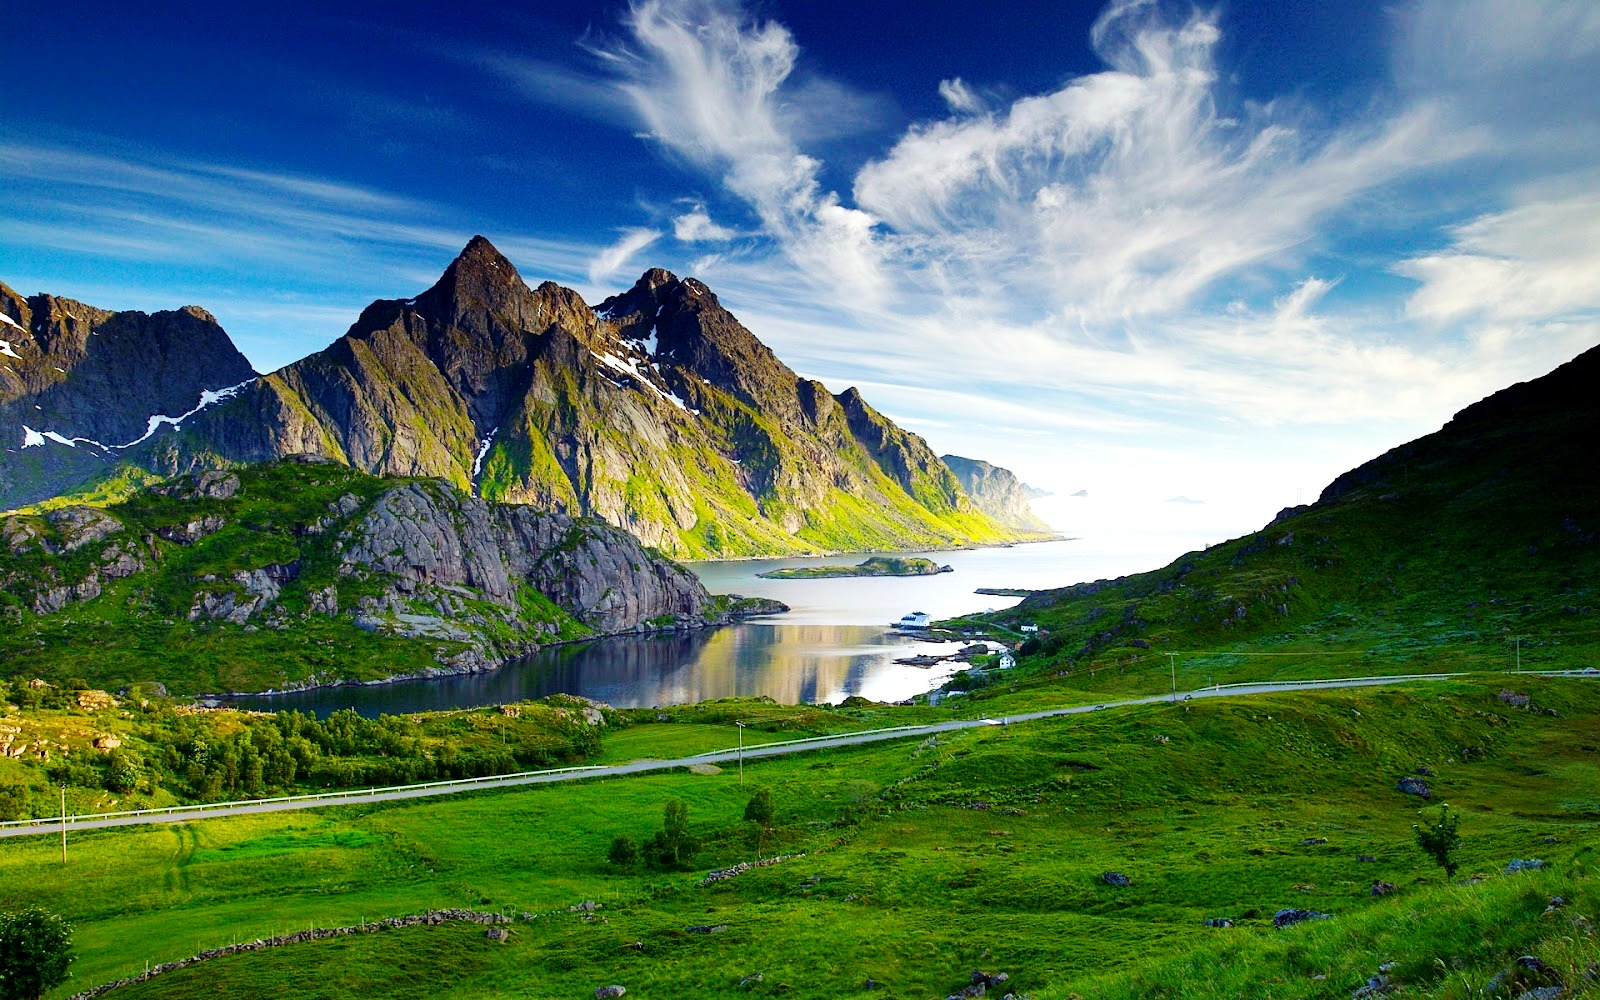 High Quality Nature Wallpaper Backgrounds Widescreen Nature High